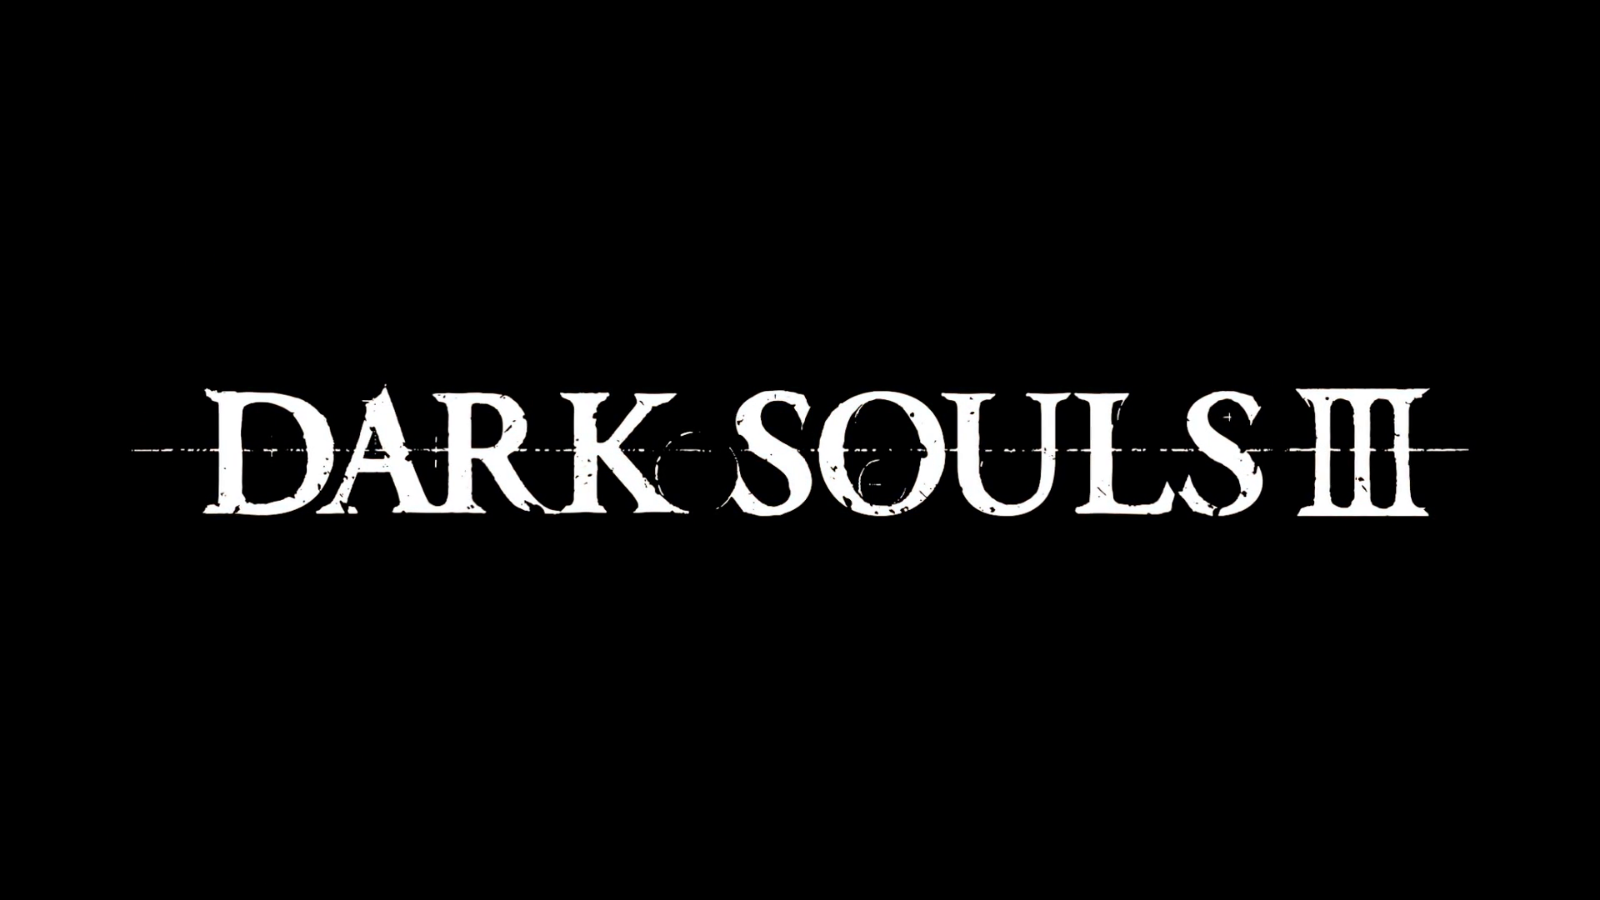 Dark souls 3 Pick any weapon of your choice PS4